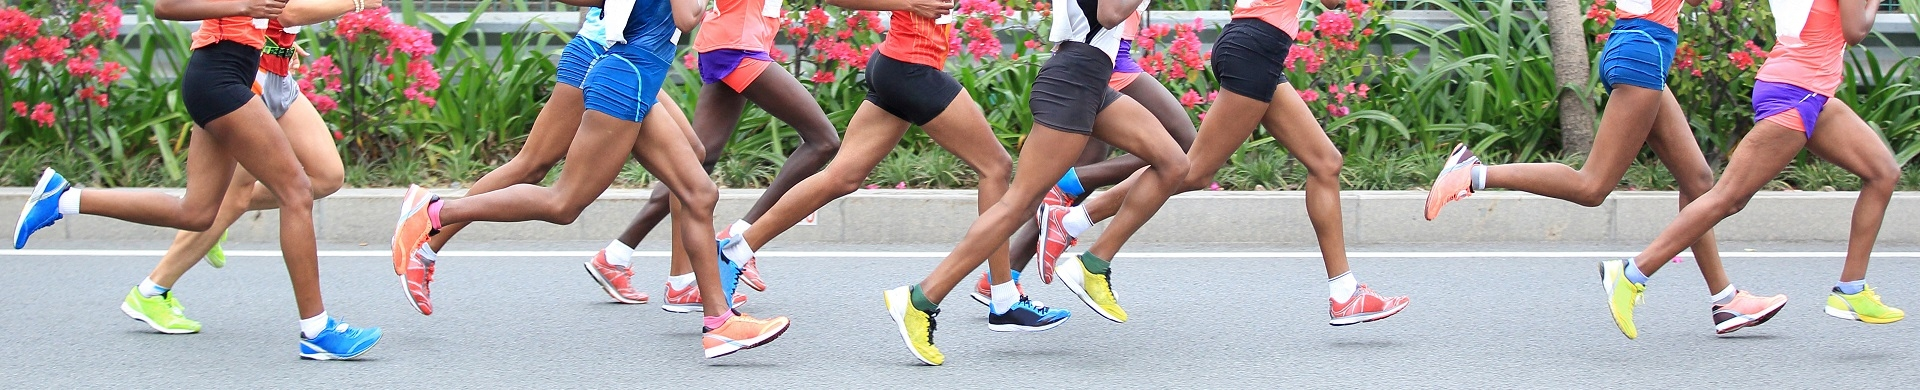 People + Race + Running Kit + Running Shoes